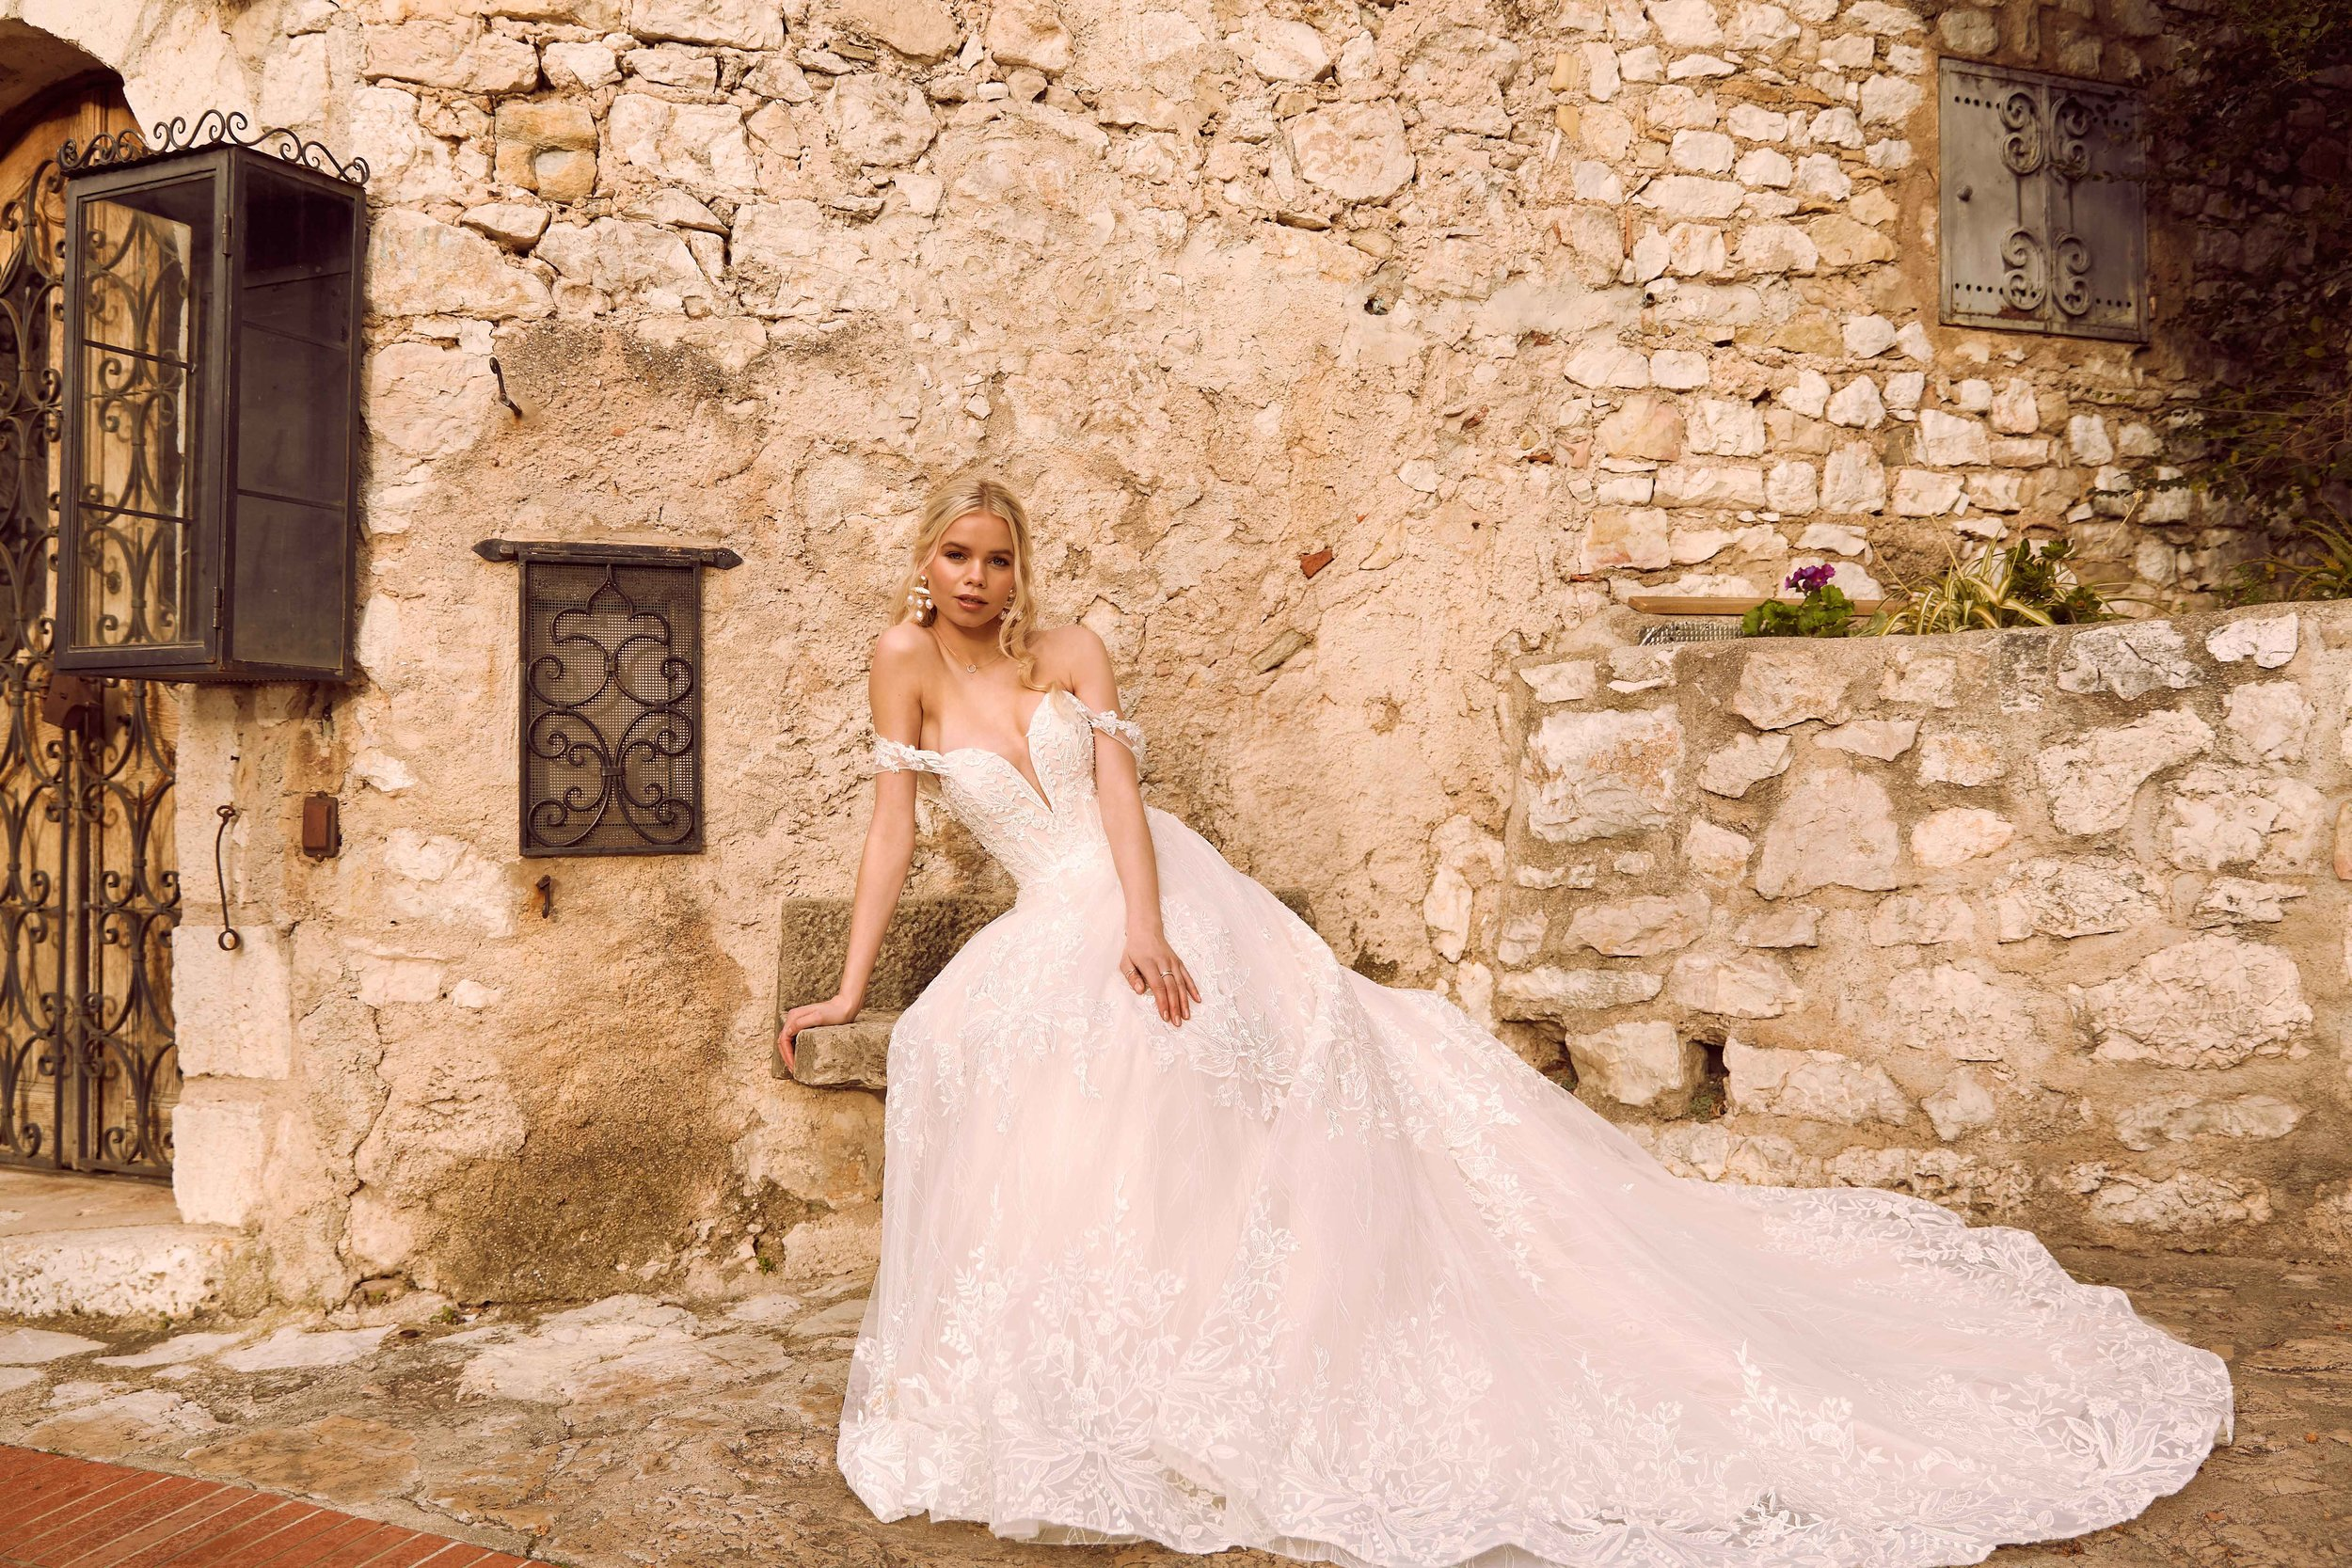 RIVIERA-CAMPAIGN-FOR-MADI-LANE-BRIDAL-SHOT-IN-SOUTH-OF-FRANCE4.jpg